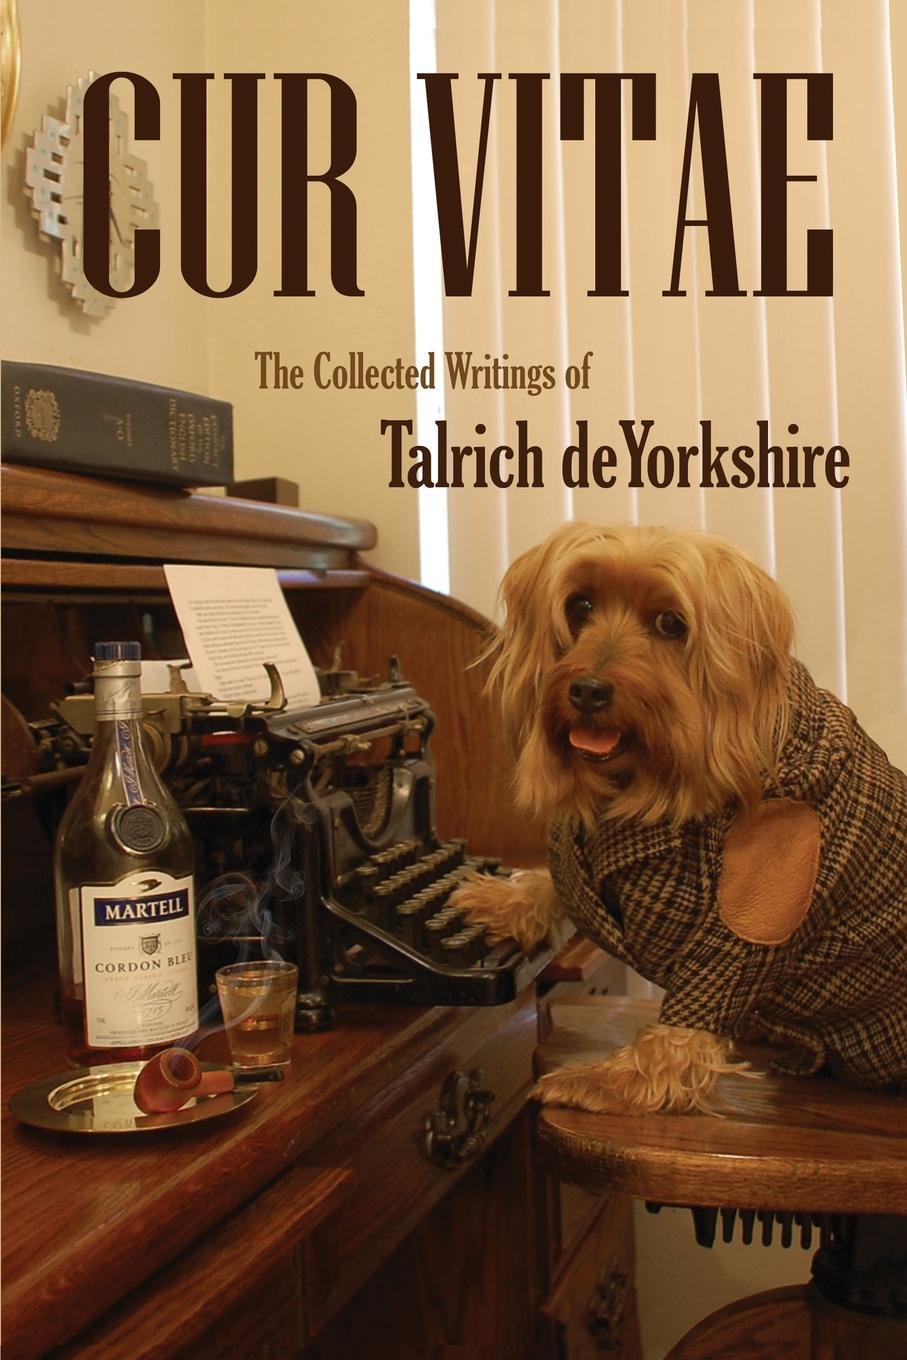 Talrich deYorkshire Cur Vitae. The Collected Writings of Talrich deYorkshire set wonders in the new year s plaid